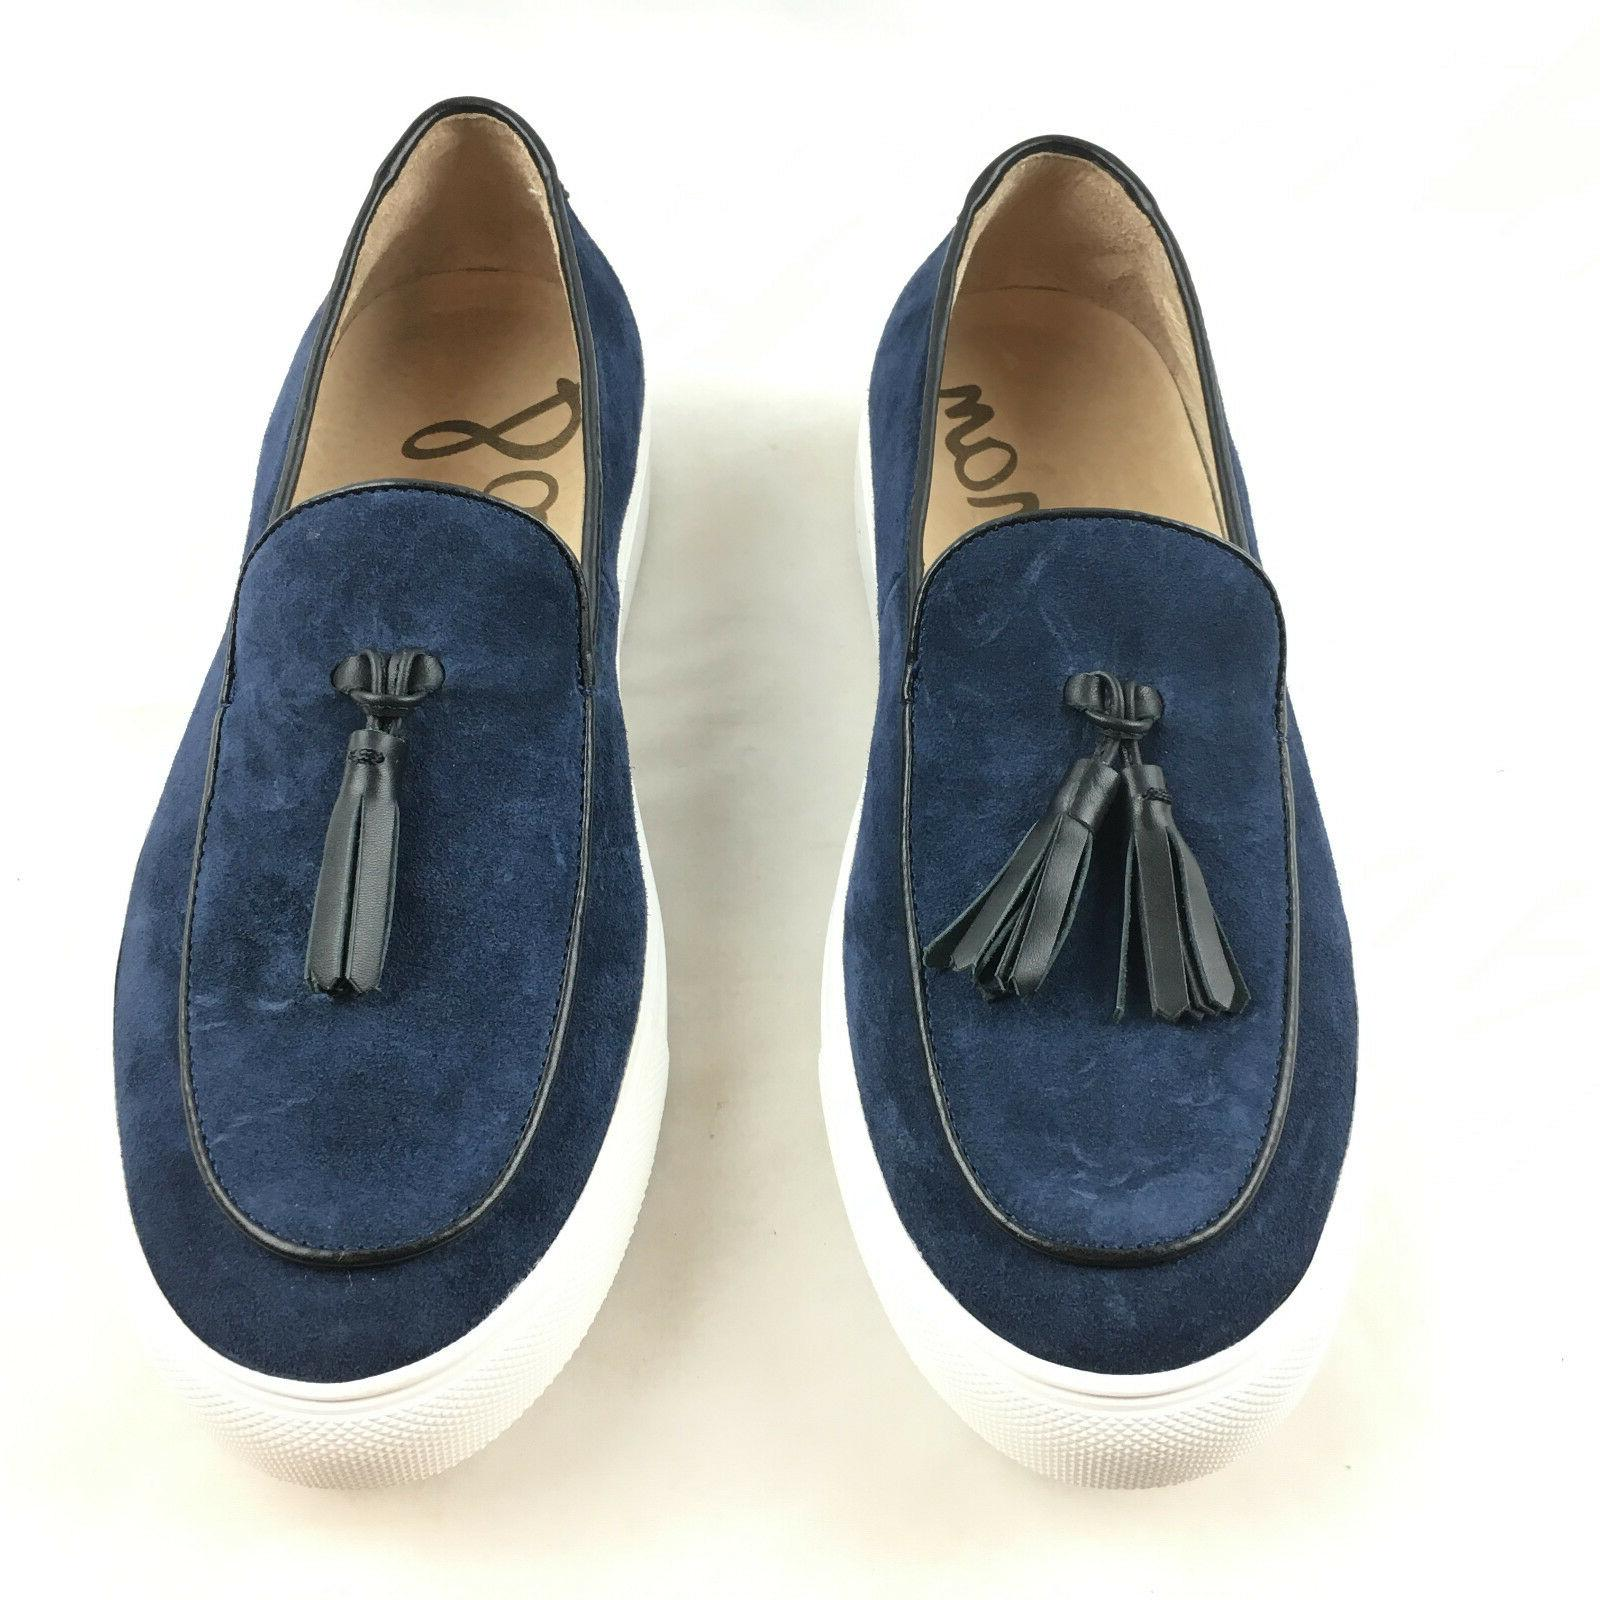 Sam Edelman Men's Curtis Navy Blue Suede Slip On Tassel Casu